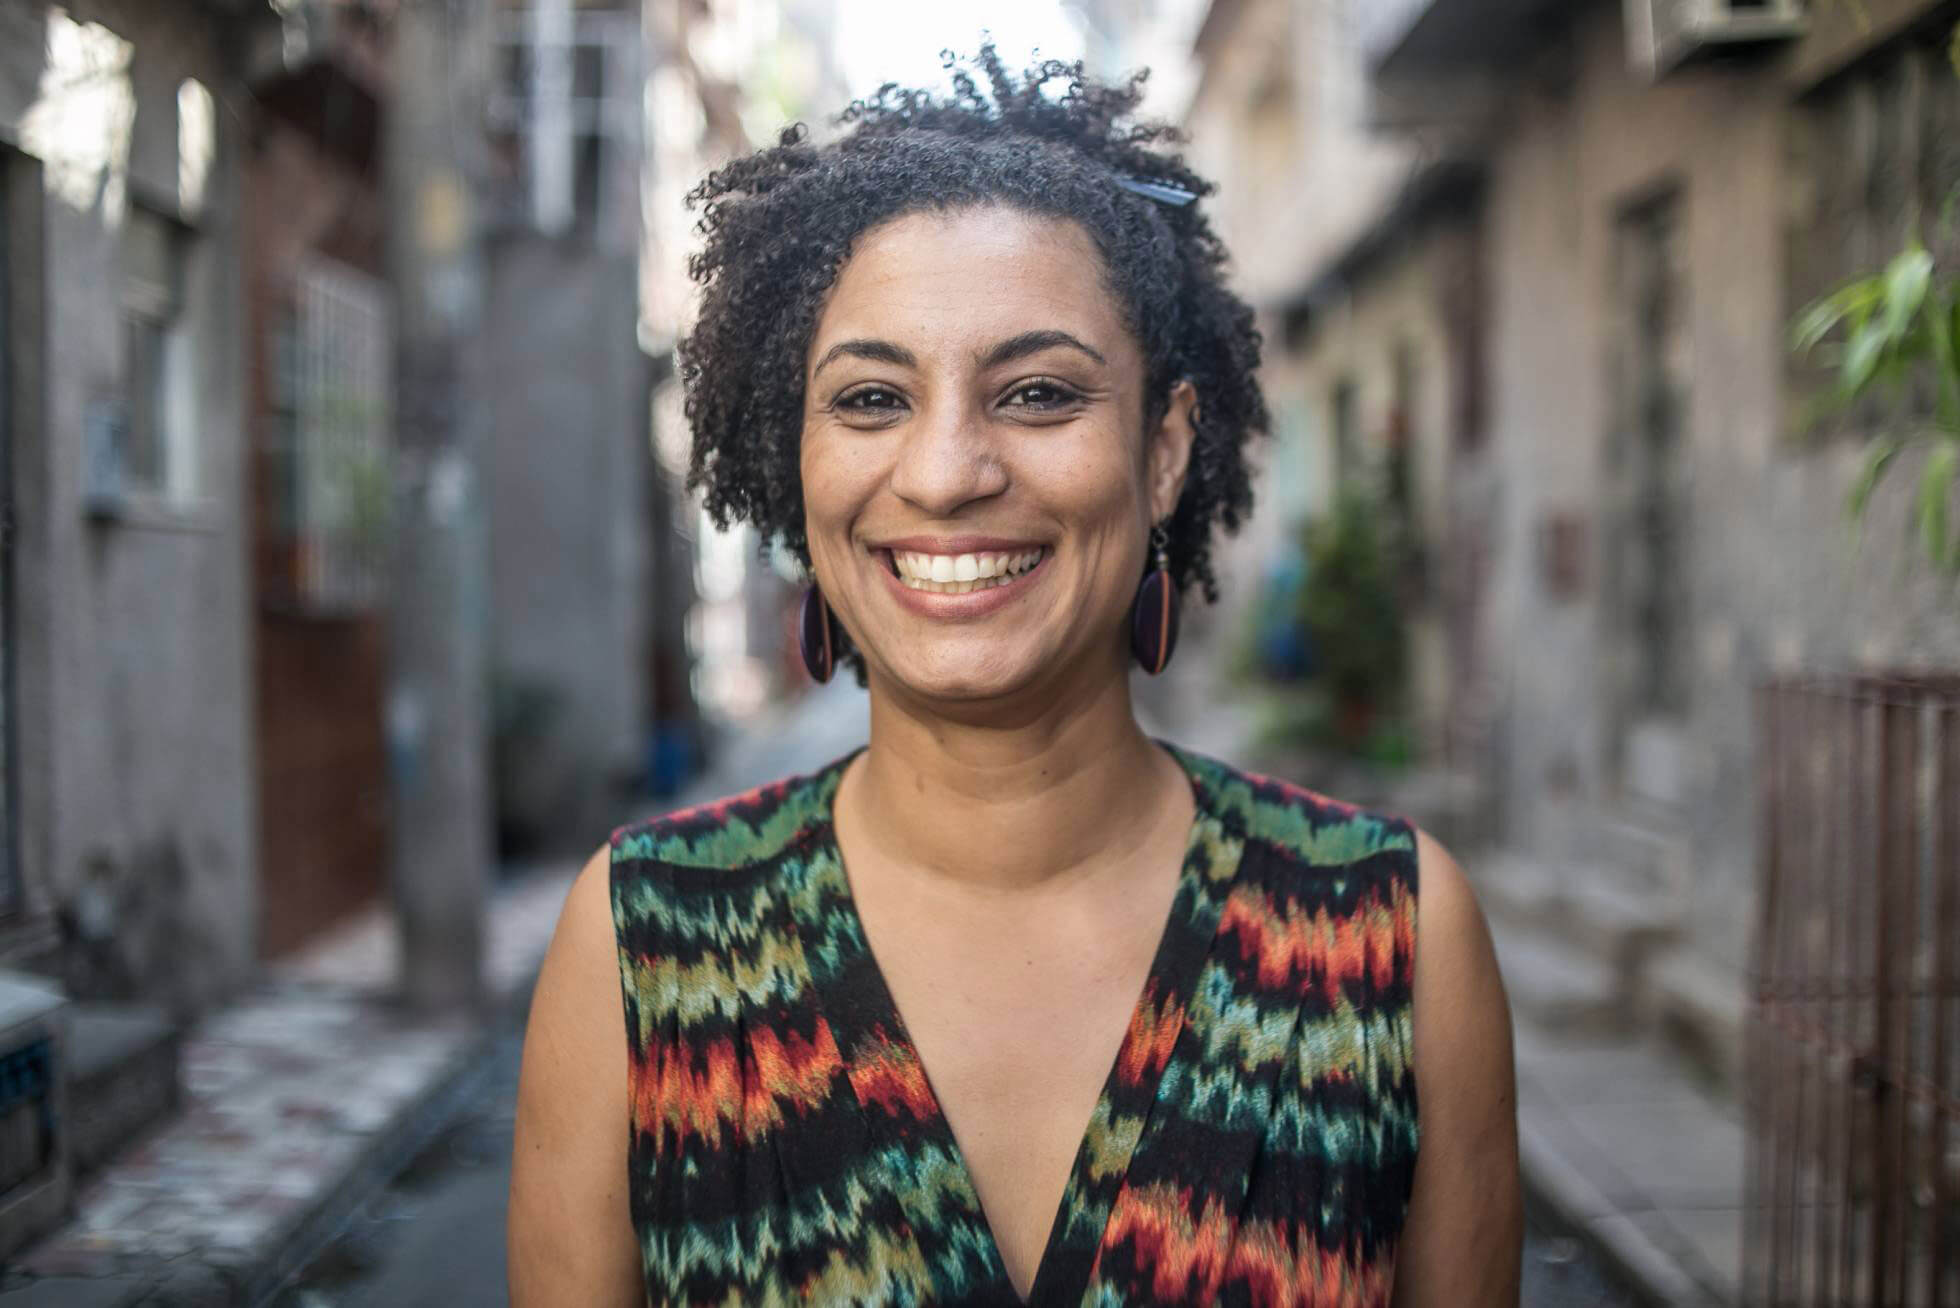 IRCT condemns the killing of Marielle Franco in Brazil